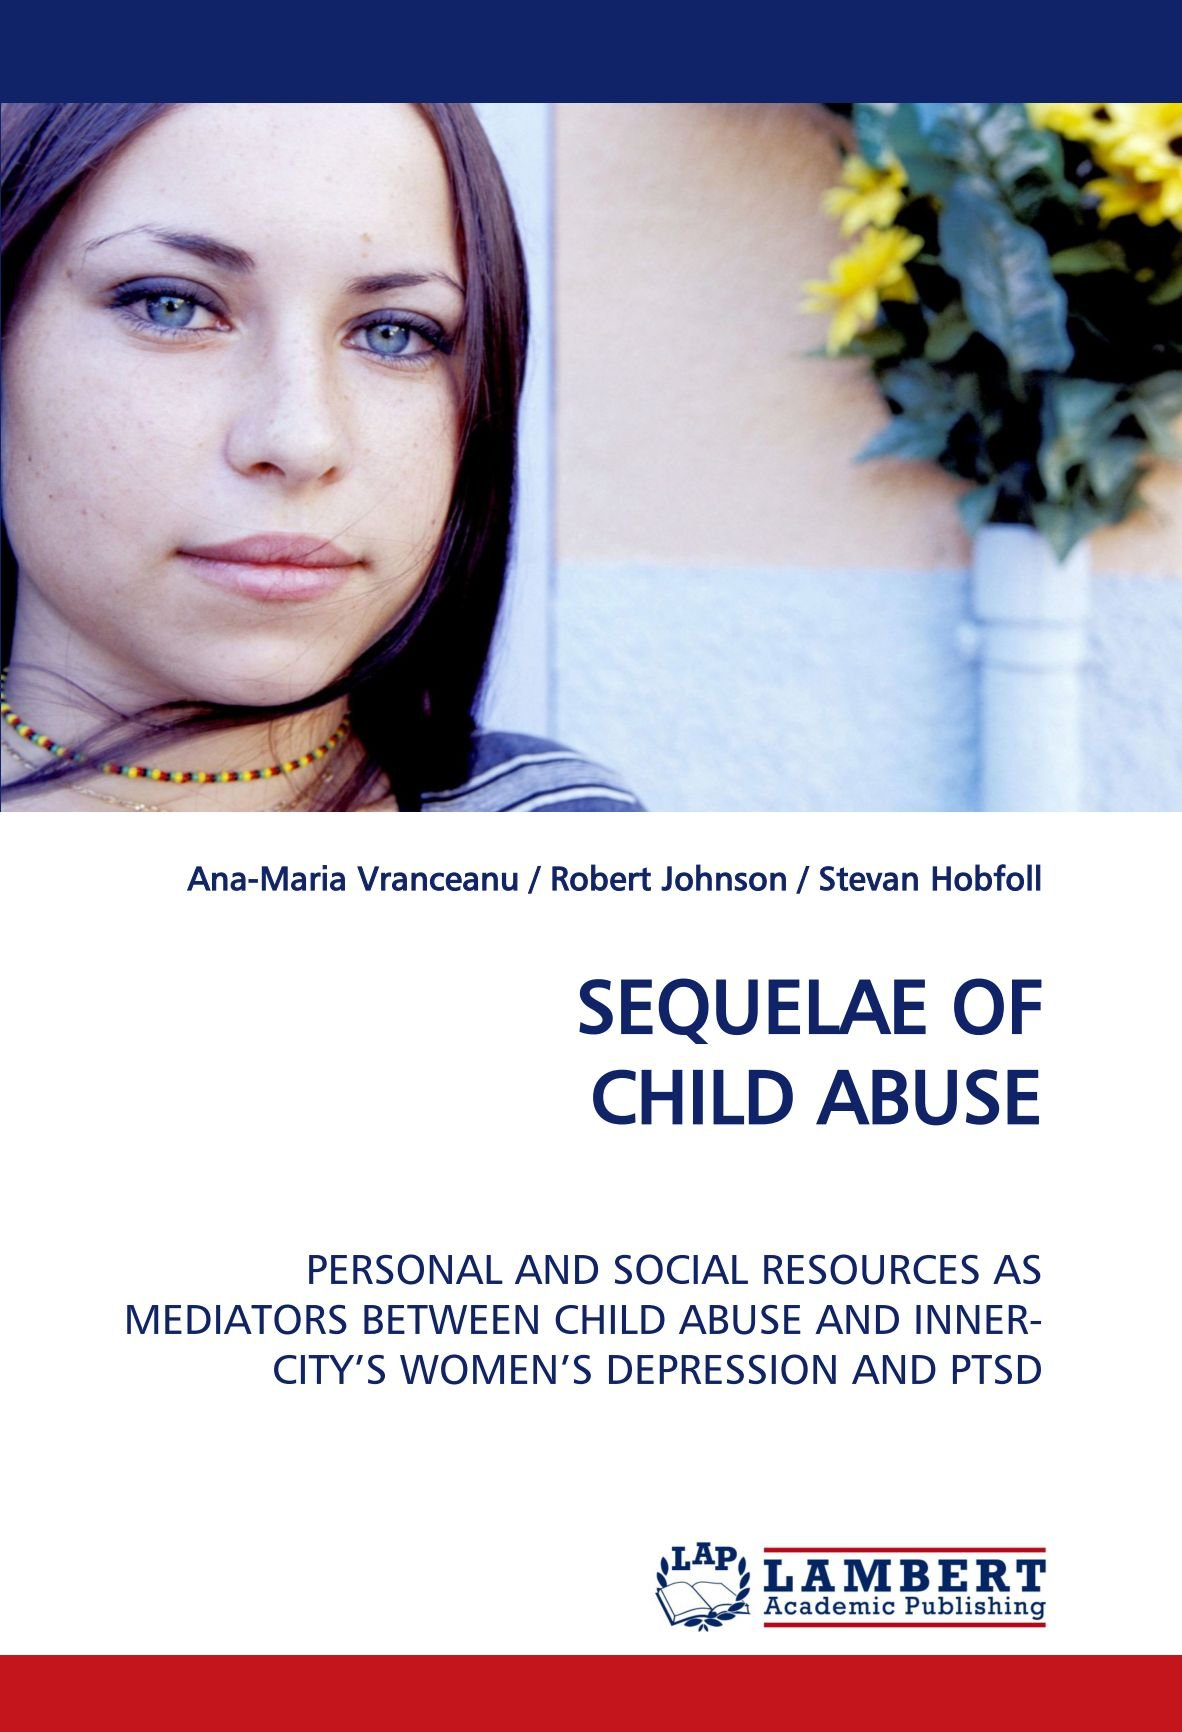 SEQUELAE OF CHILD ABUSE: PERSONAL AND SOCIAL RESOURCES AS MEDIATORS BETWEEN CHILD ABUSE AND INNER-CITY¿S WOMEN¿S DEPRESSION AND PTSD pdf epub